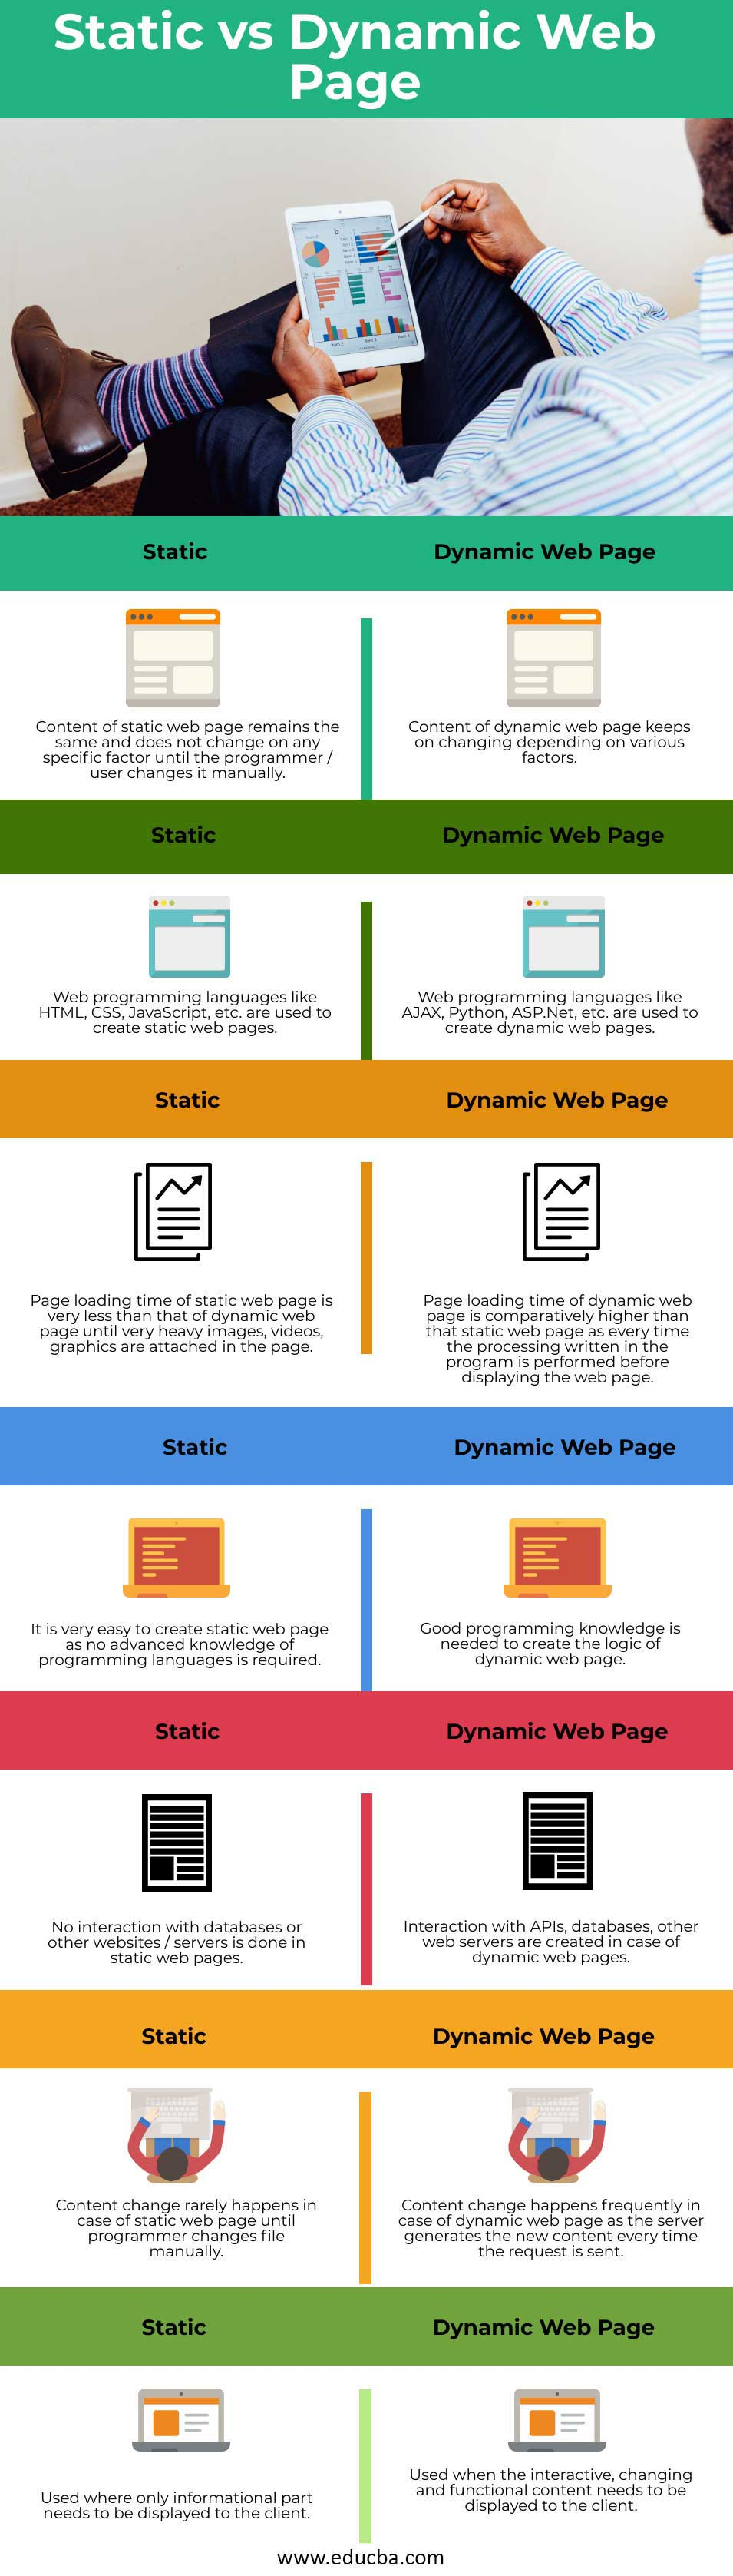 Static-vs-Dynamic-Web-Page-info